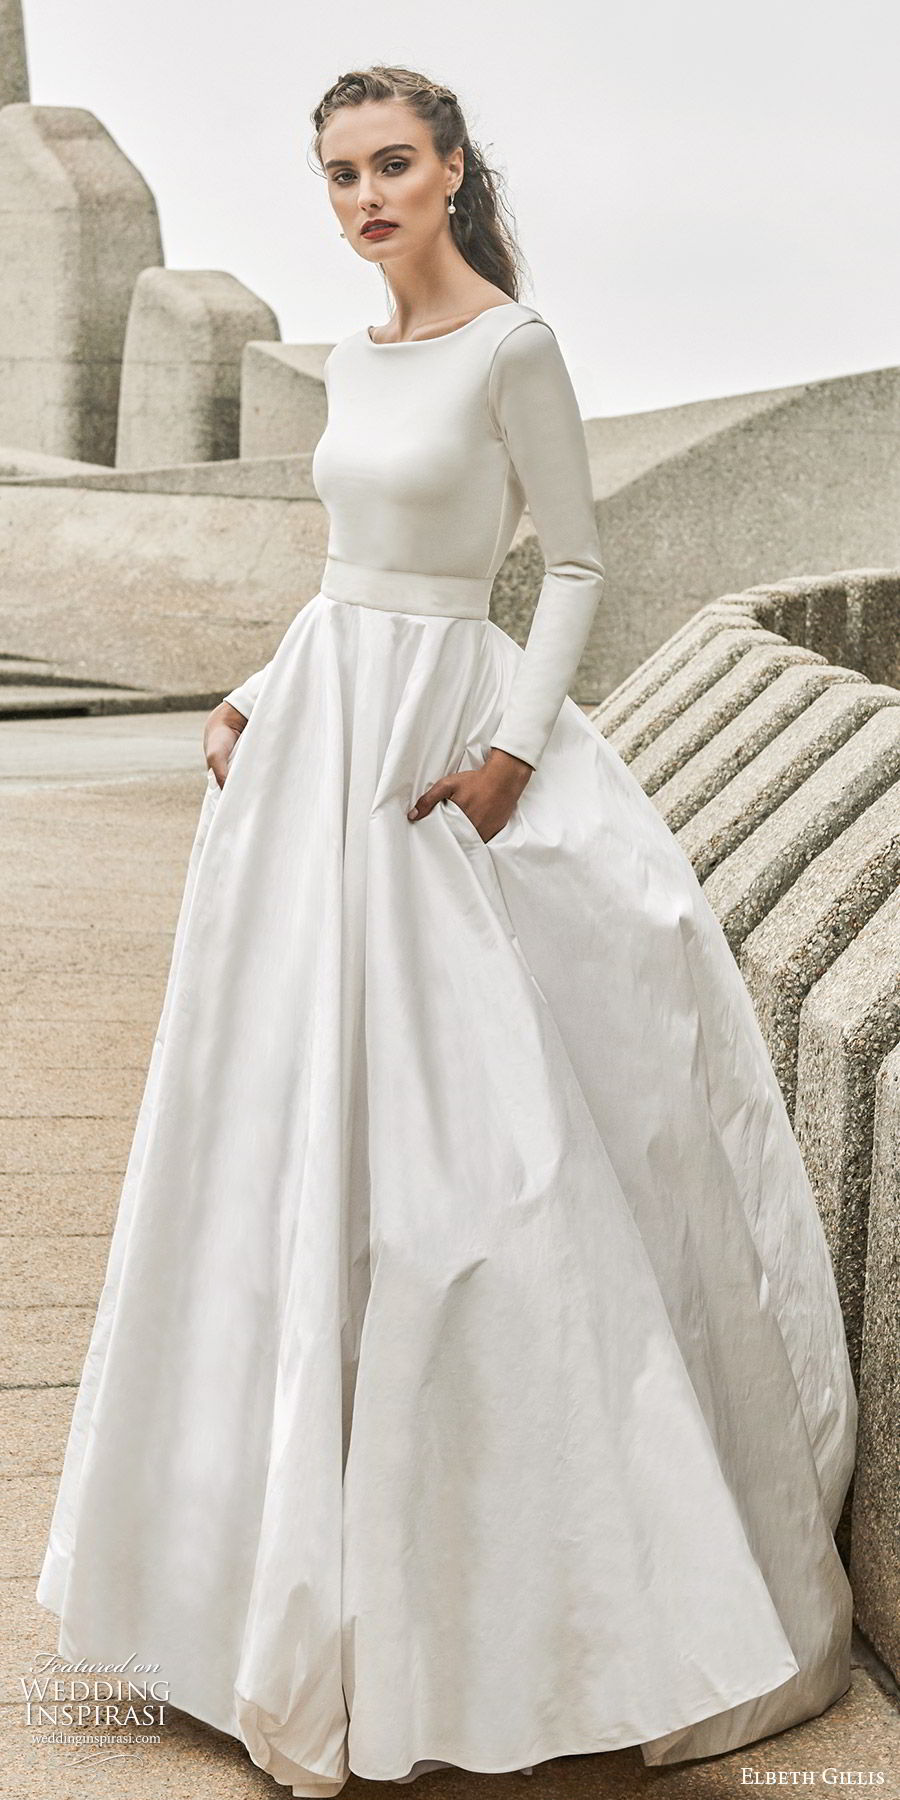 elbeth gillis 2020 bridal long sleeves bateau neckline minimally embellished a line ball gown wedding dress (2) clean chic minimal modest sweep train scoop back pockets fv